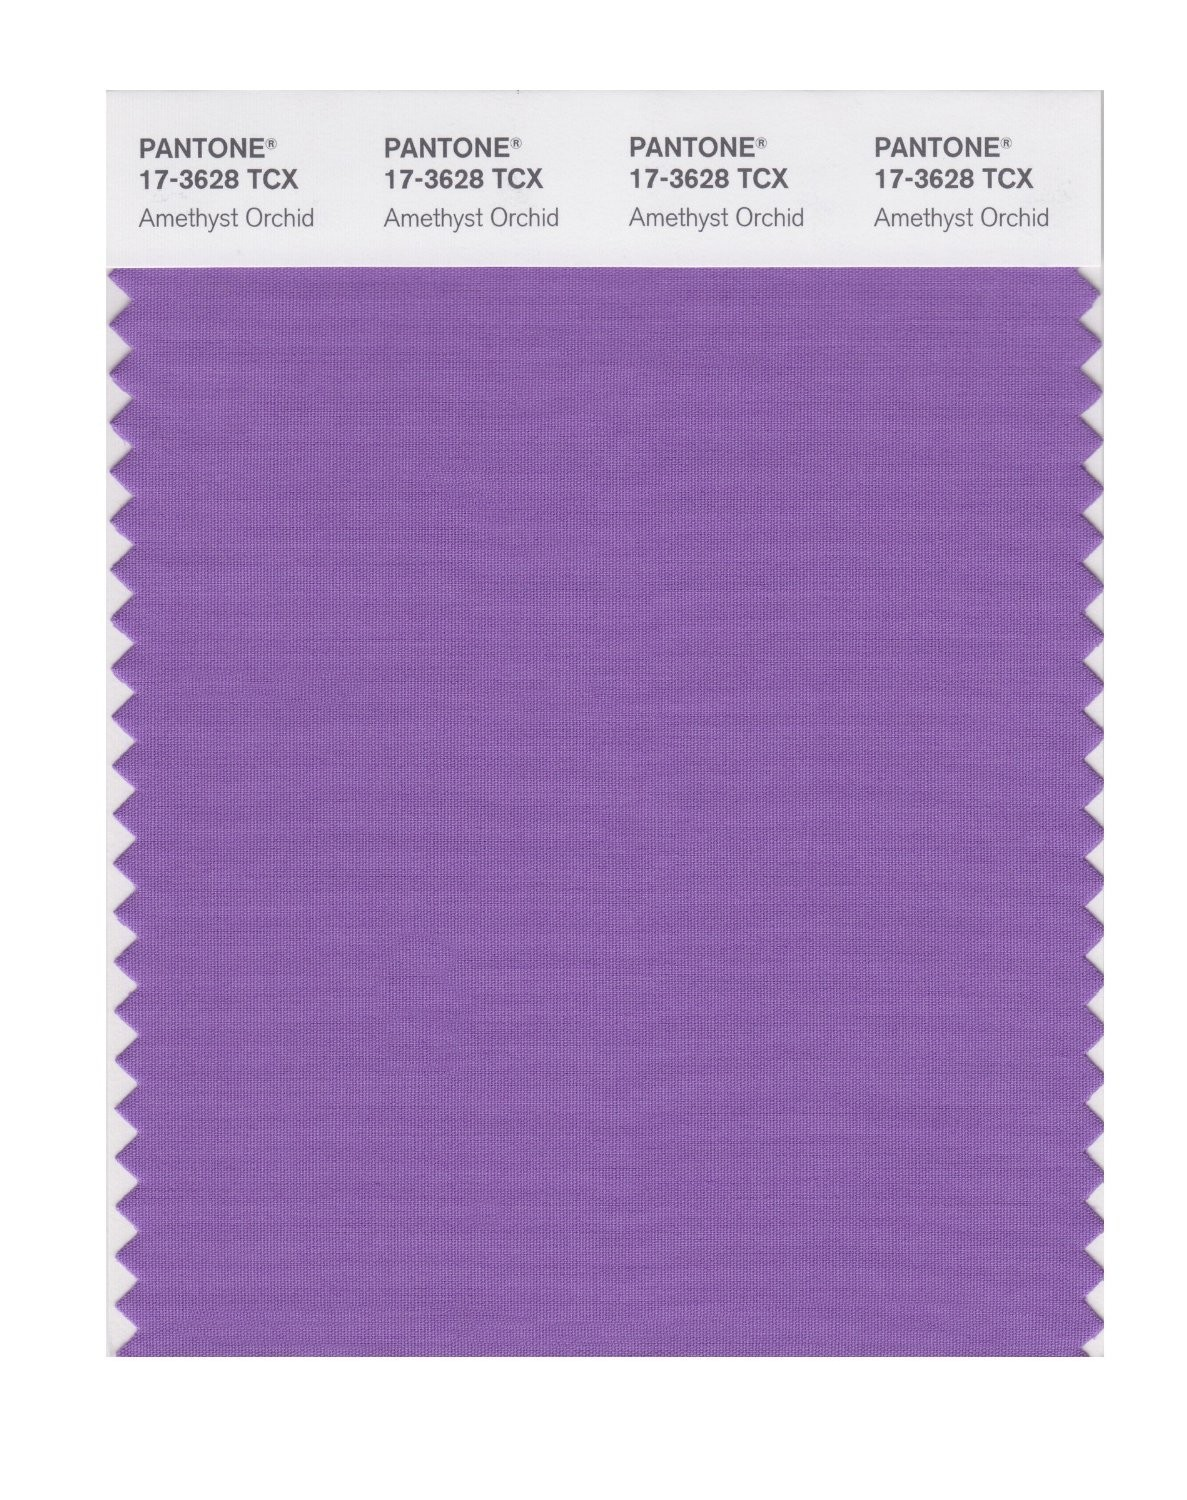 Pantone 17-3628 TCX Swatch Card Amethyst Orchid